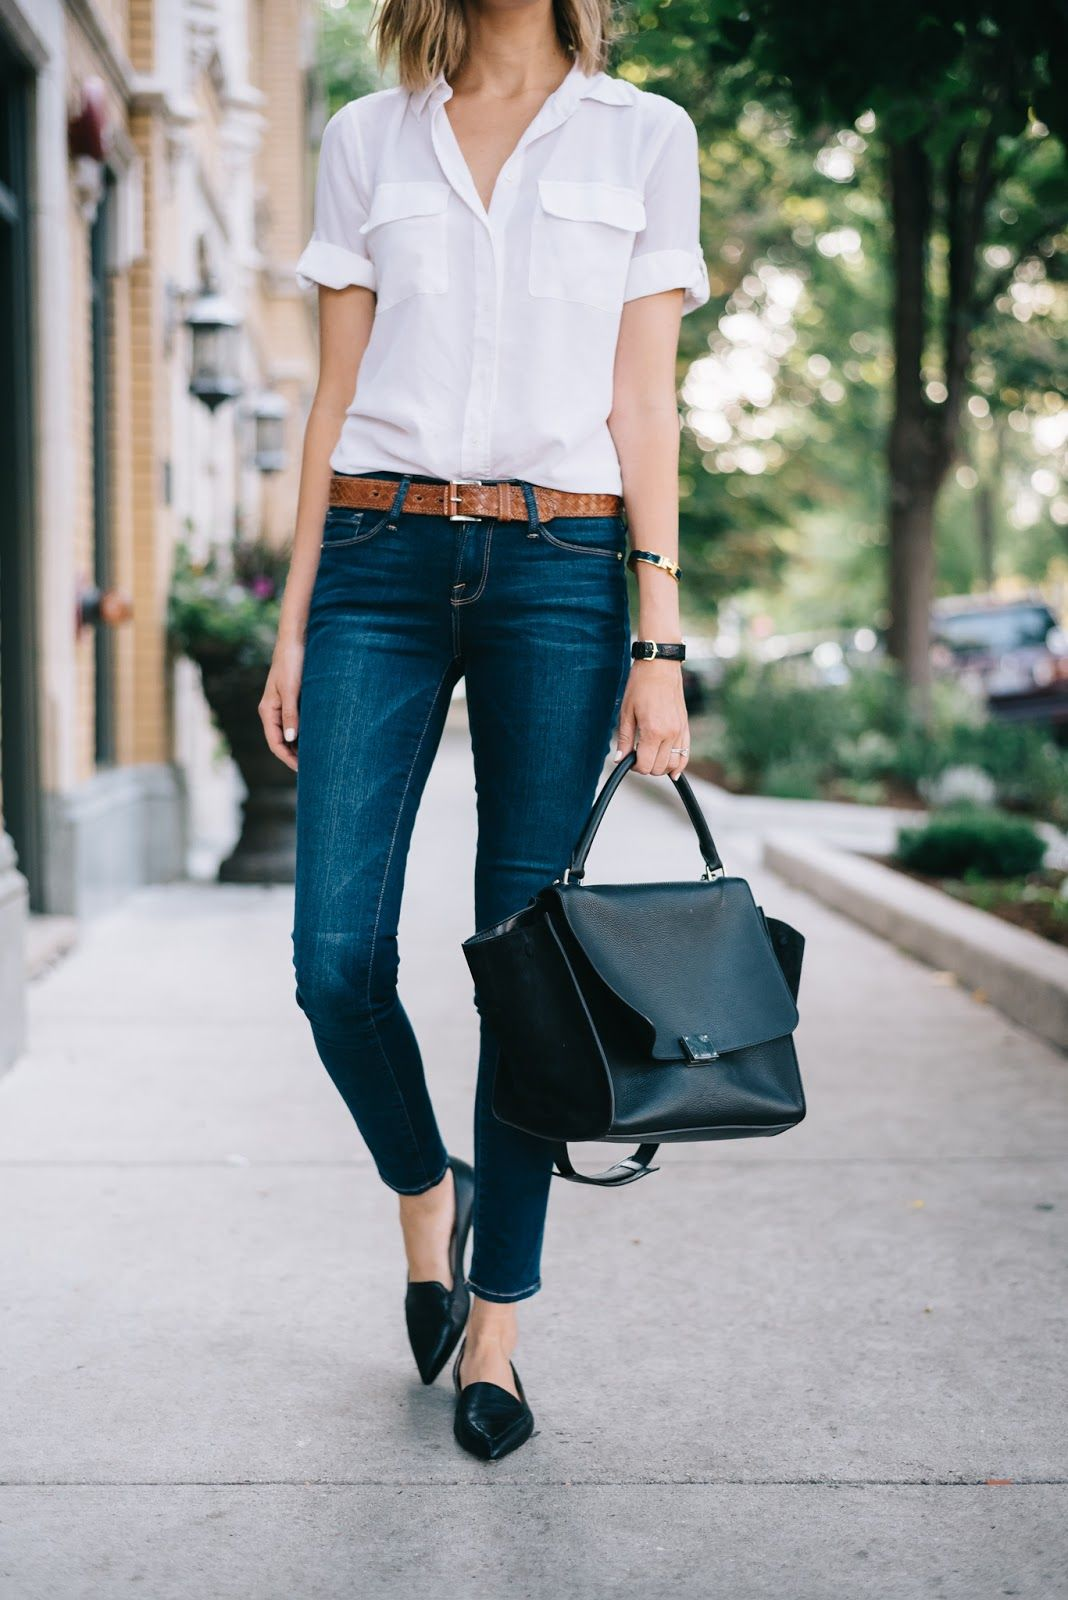 classic outfit // white blouse, jeans and black flats | AVE STYLES ...